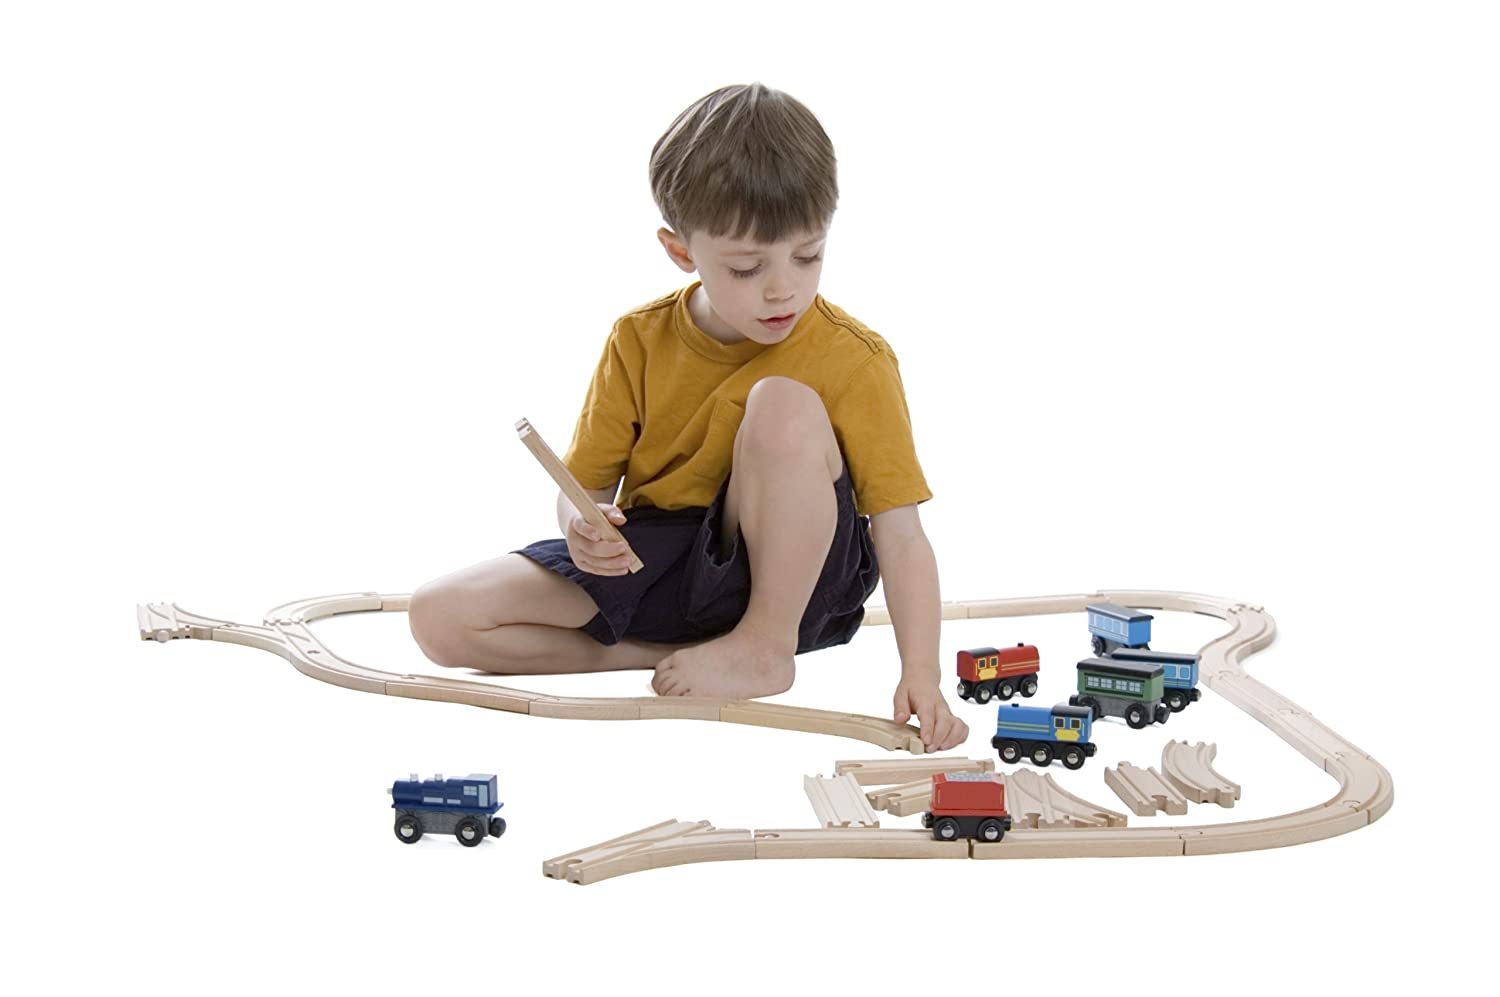 By Kids Destiny 110 Pieces 100/% Compatible with All Major Brands Including Thomas Train Wooden Railway System Wooden Train Track Deluxe Set